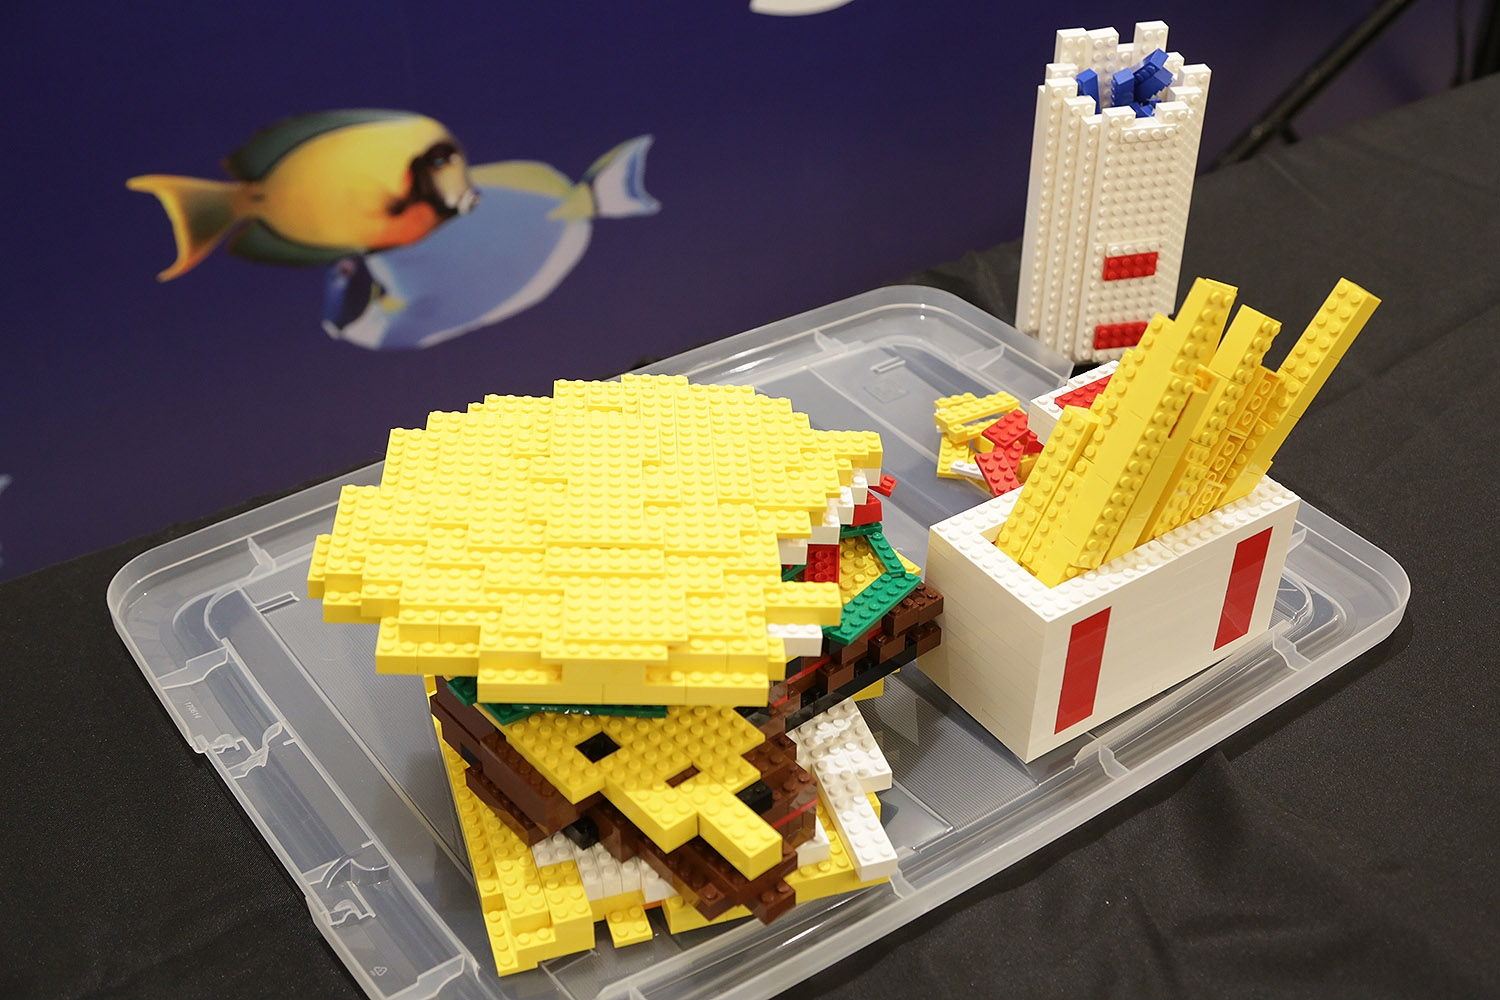 Lego Competition Offers Job Of Master Model Builder At